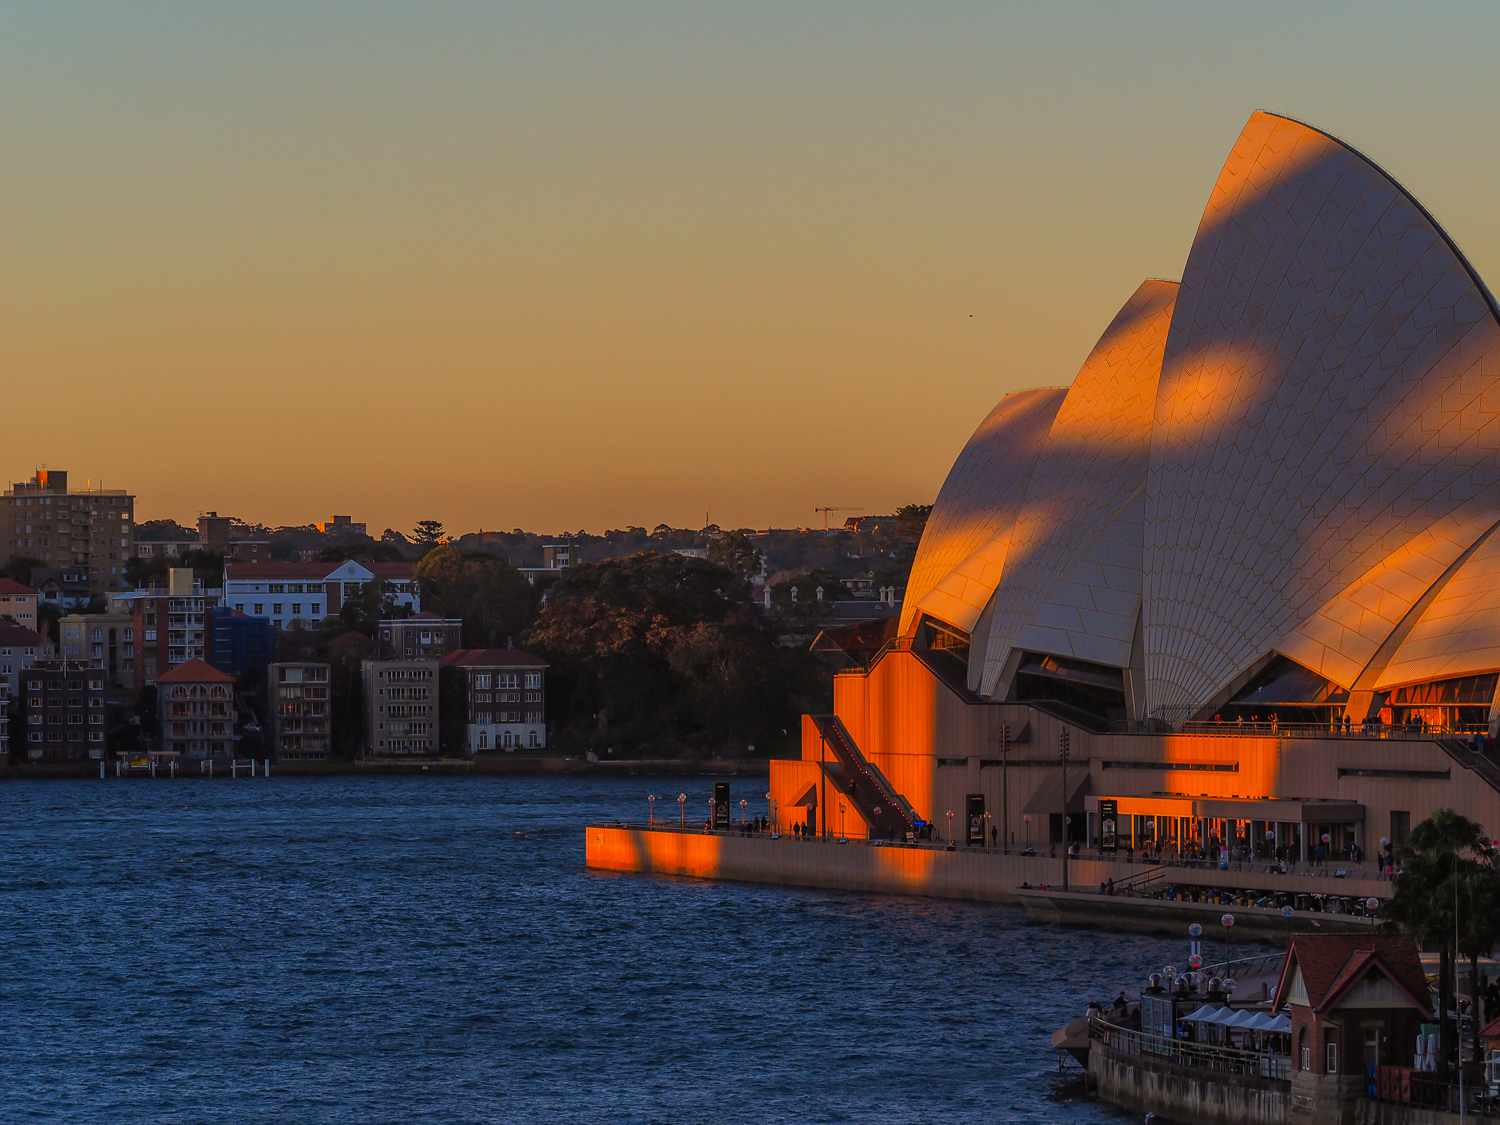 Sydney Opera House in the shadow of the harbour bridge in the very last light of day. 27 May 2016. 1/320sec, f/5, ISO 200